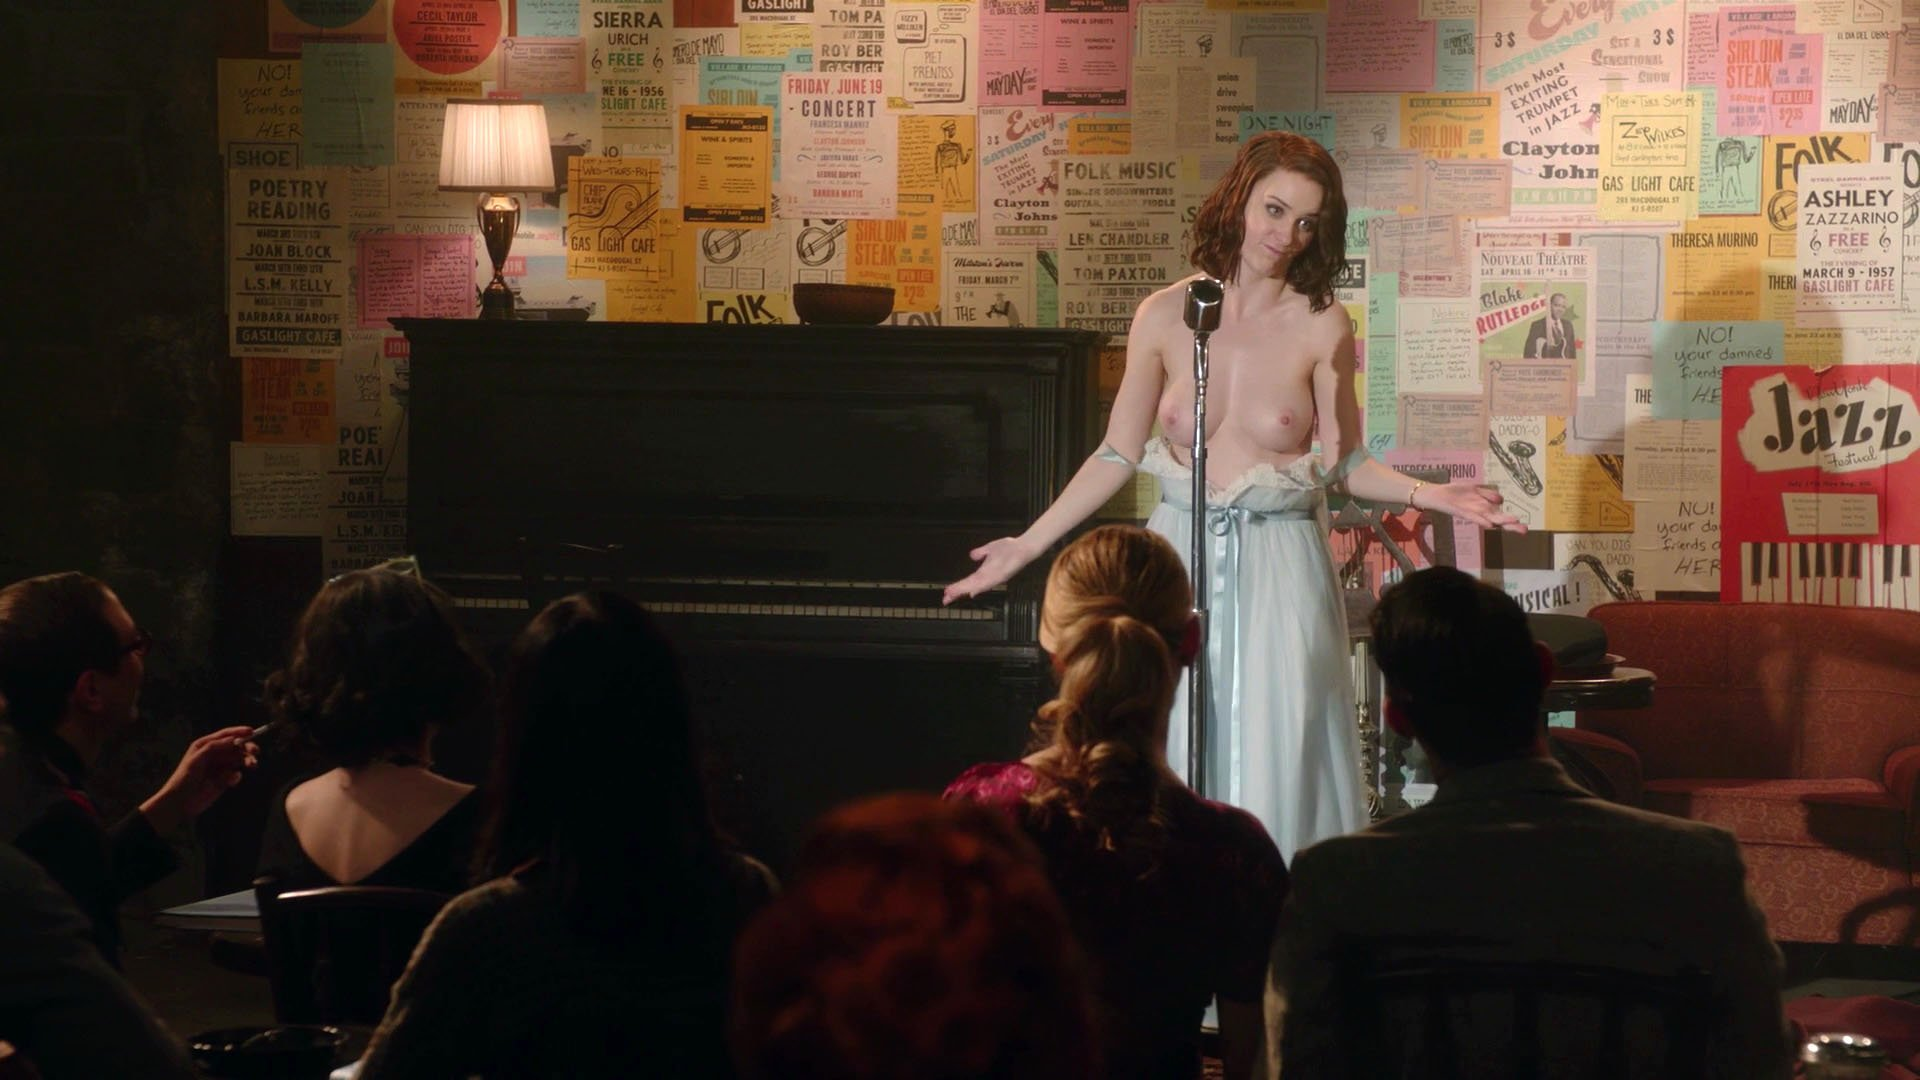 Rachel Brosnahan nude - The Marvelous Mrs. Maisel s01e01 (2017)